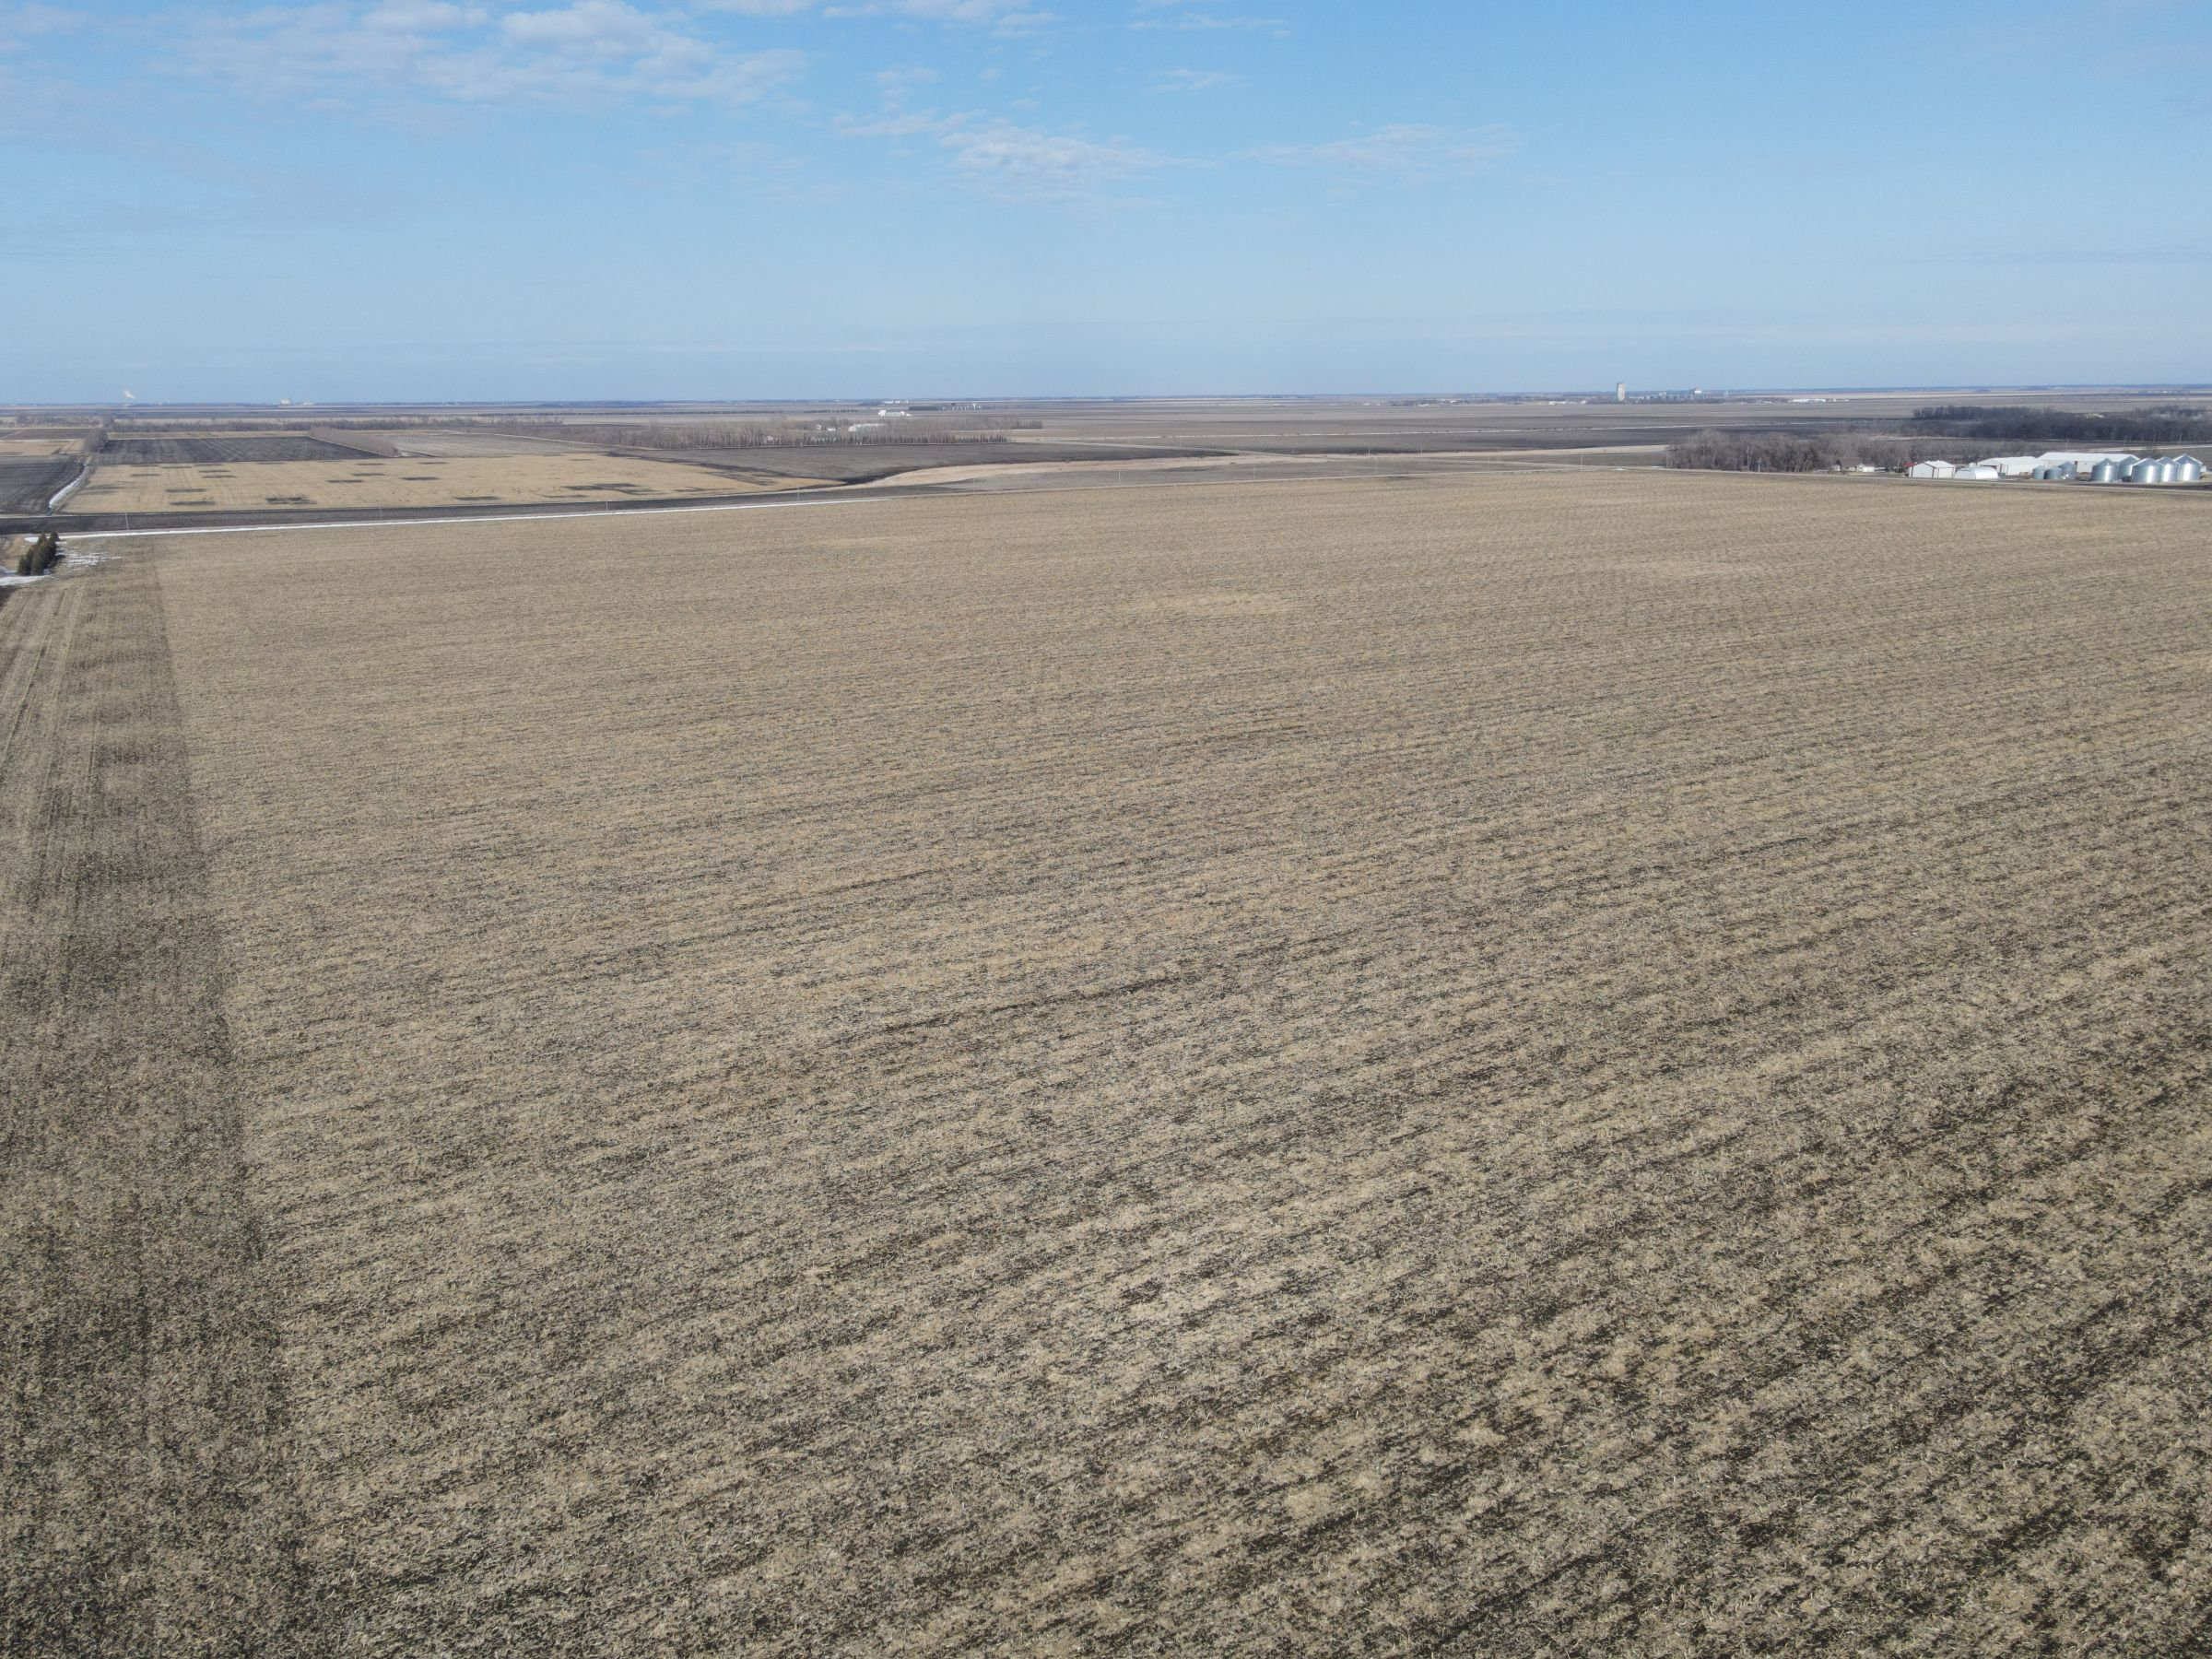 auctions-cass-county-north-dakota-157-acres-listing-number-15592-0-2021-06-16-181210.JPG